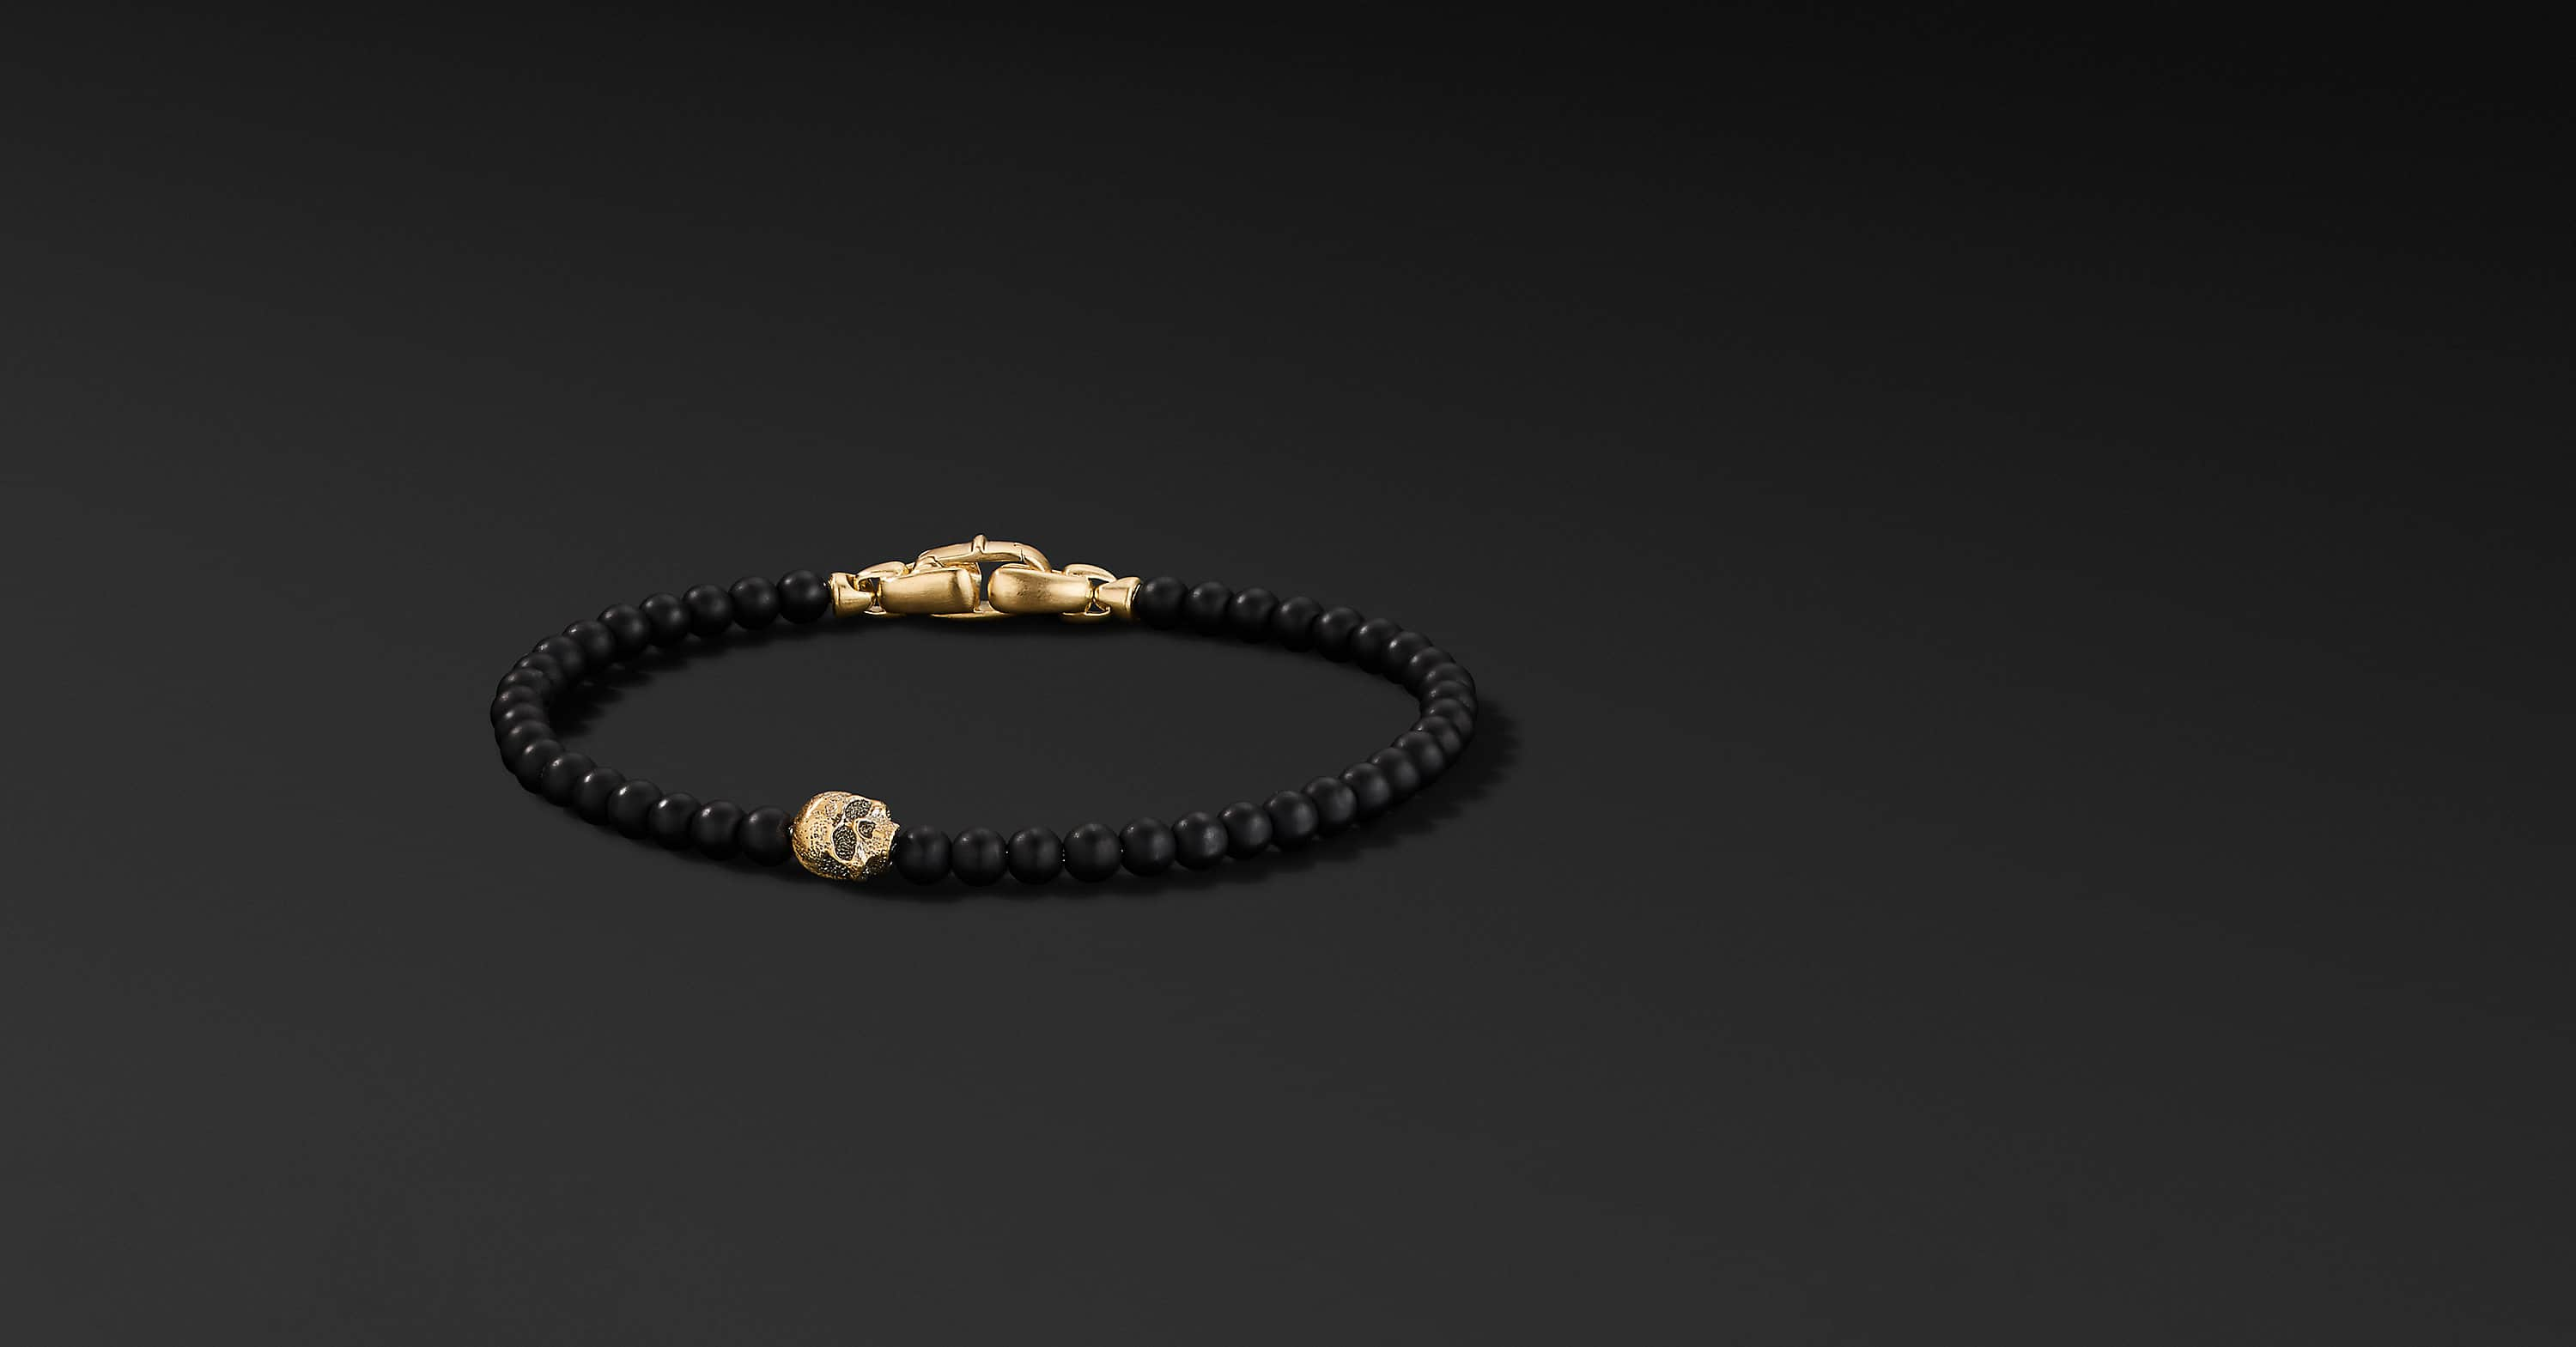 Spiritual Beads Skull Bracelet with 18K Yellow Gold